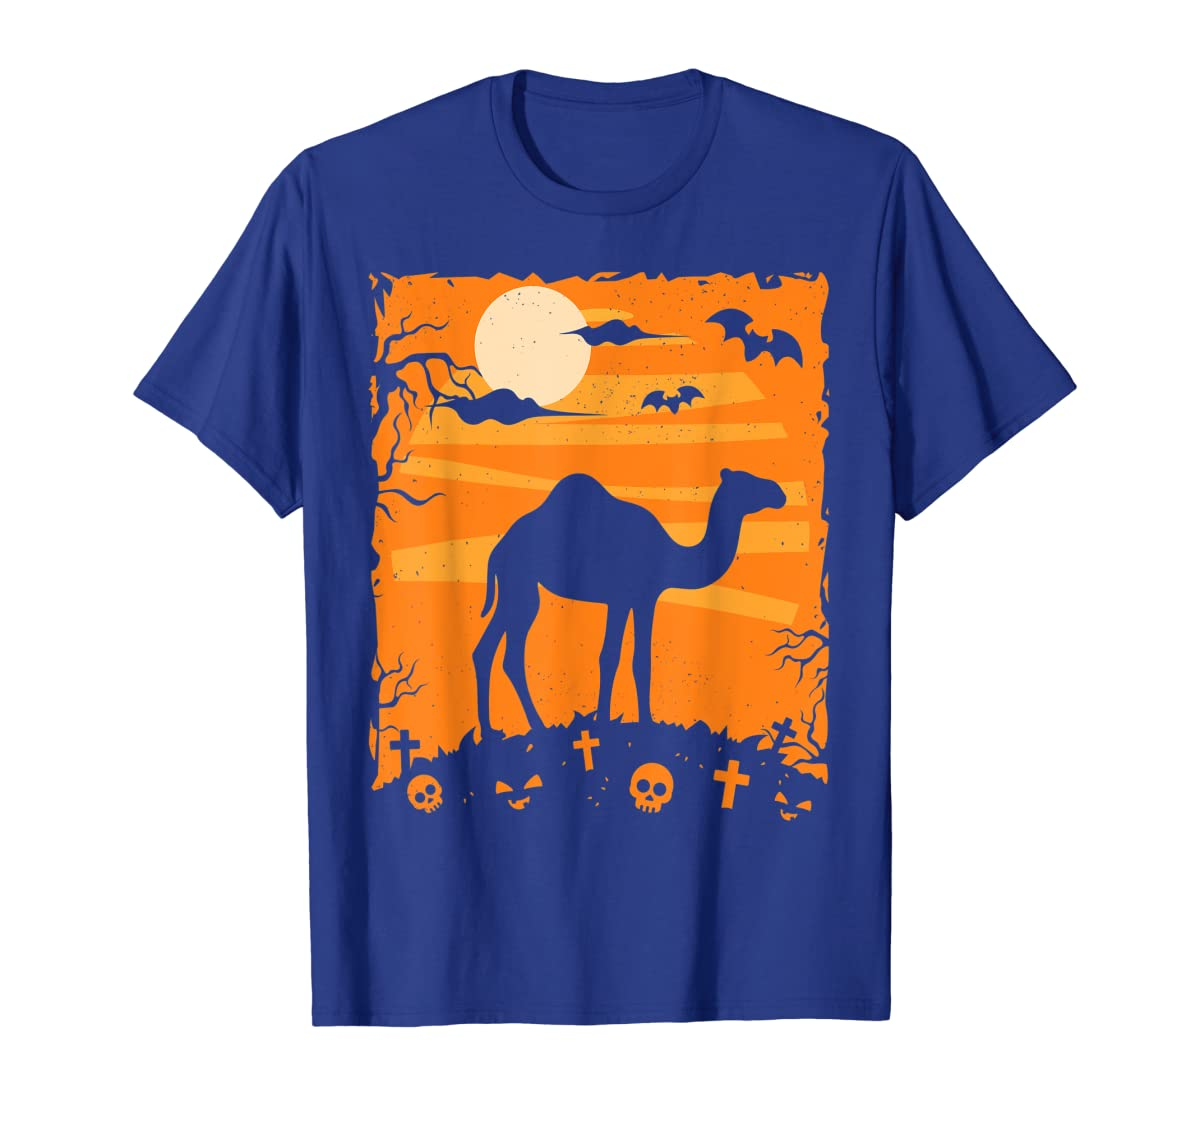 Camel Halloween Costume Animal Funny Pumpkin Outfit Gift T-Shirt-Men's T-Shirt-Royal